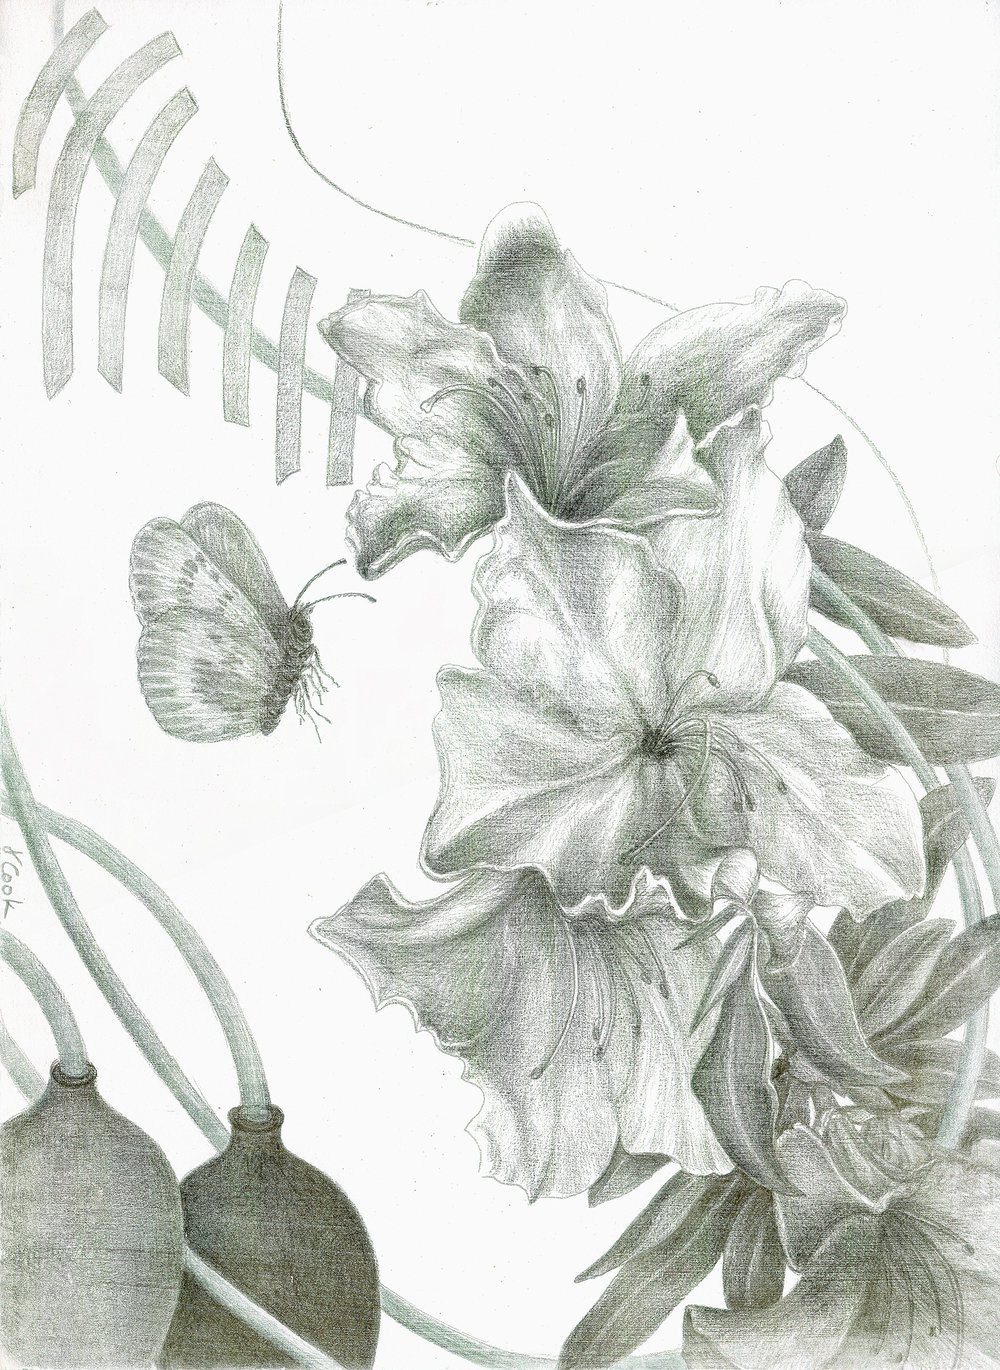 recovery from Surgery, silverpoint, Jeannine Cook artist